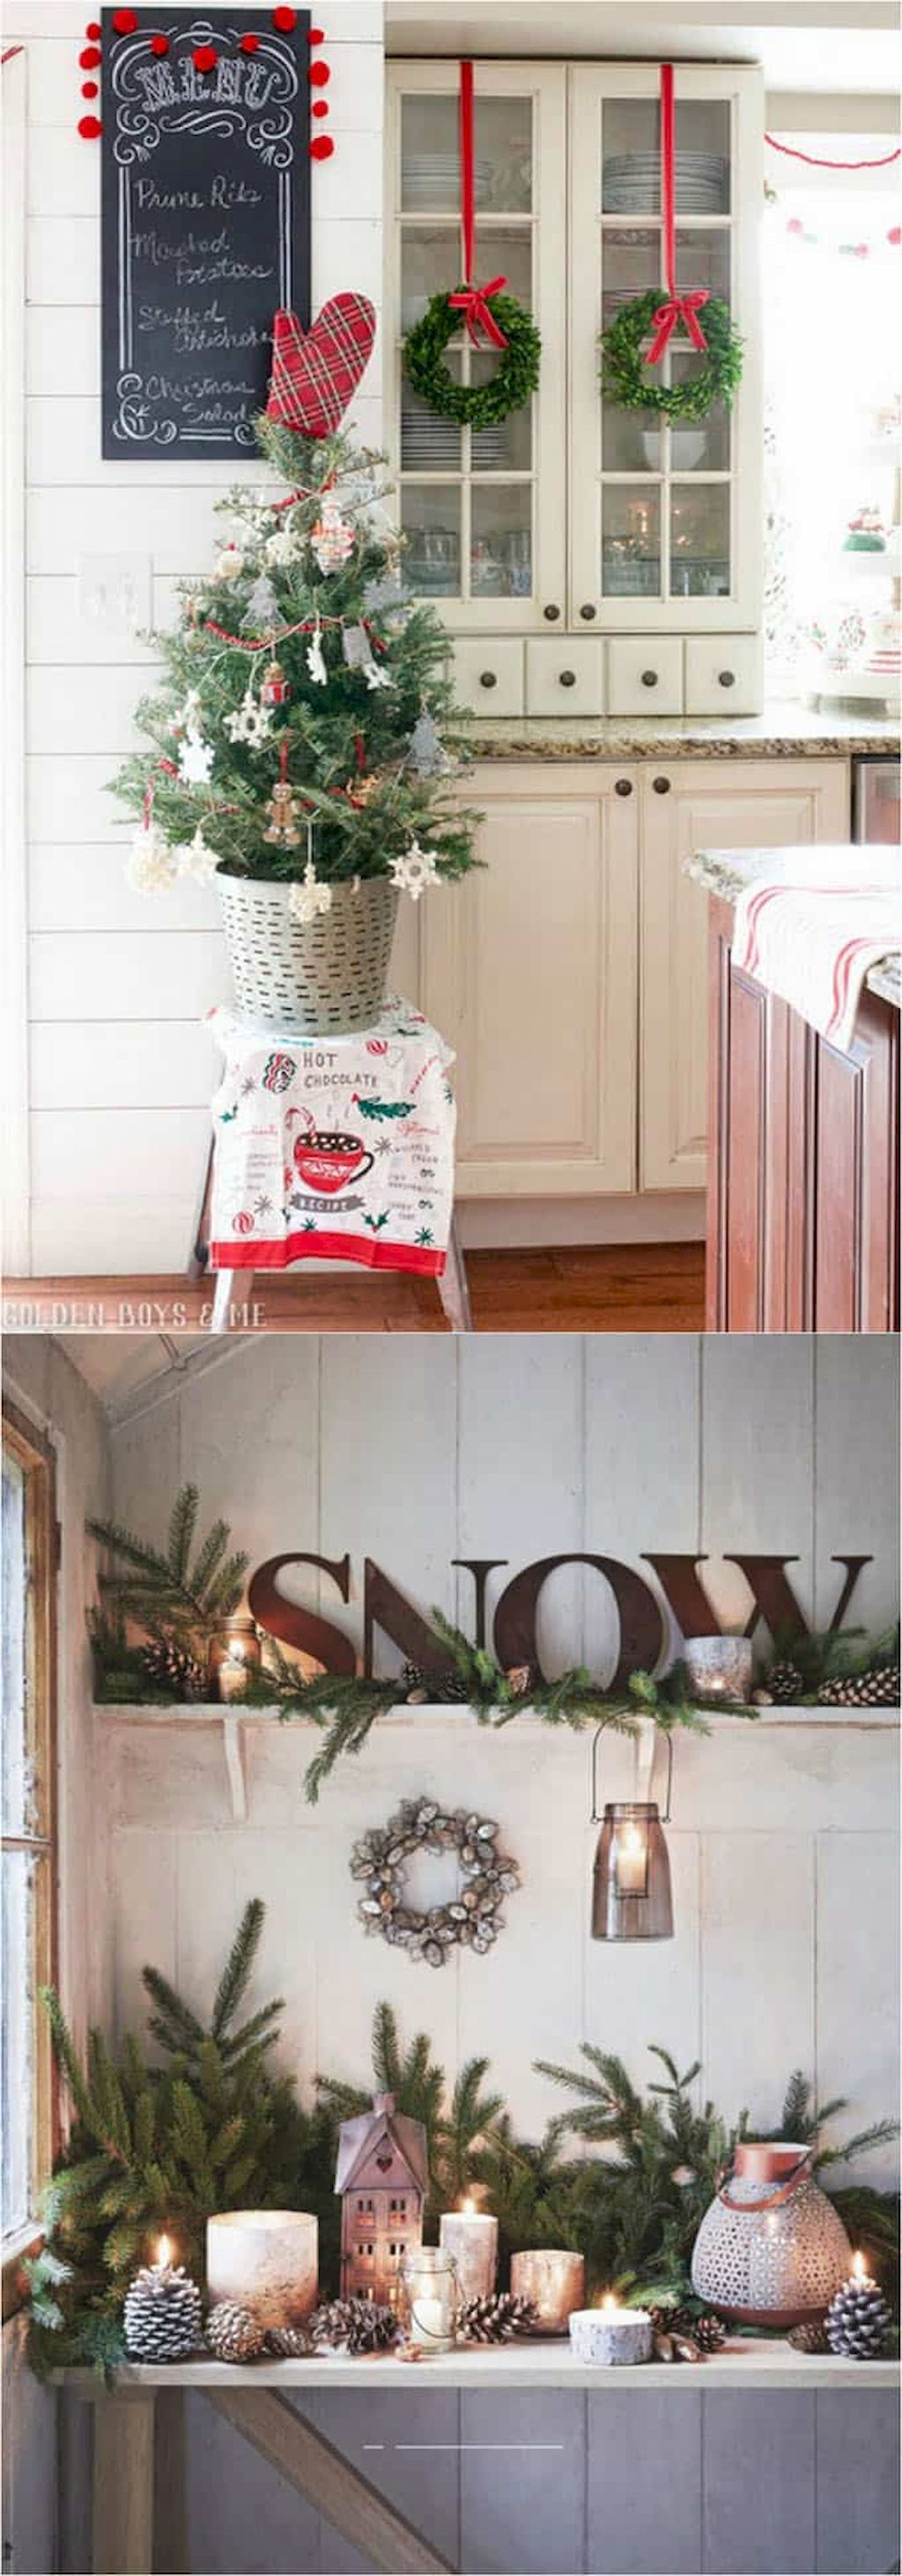 41 favorite christmas decorating ideas for every room in your home 26 farmhouse christmas on kitchen xmas decor id=38804